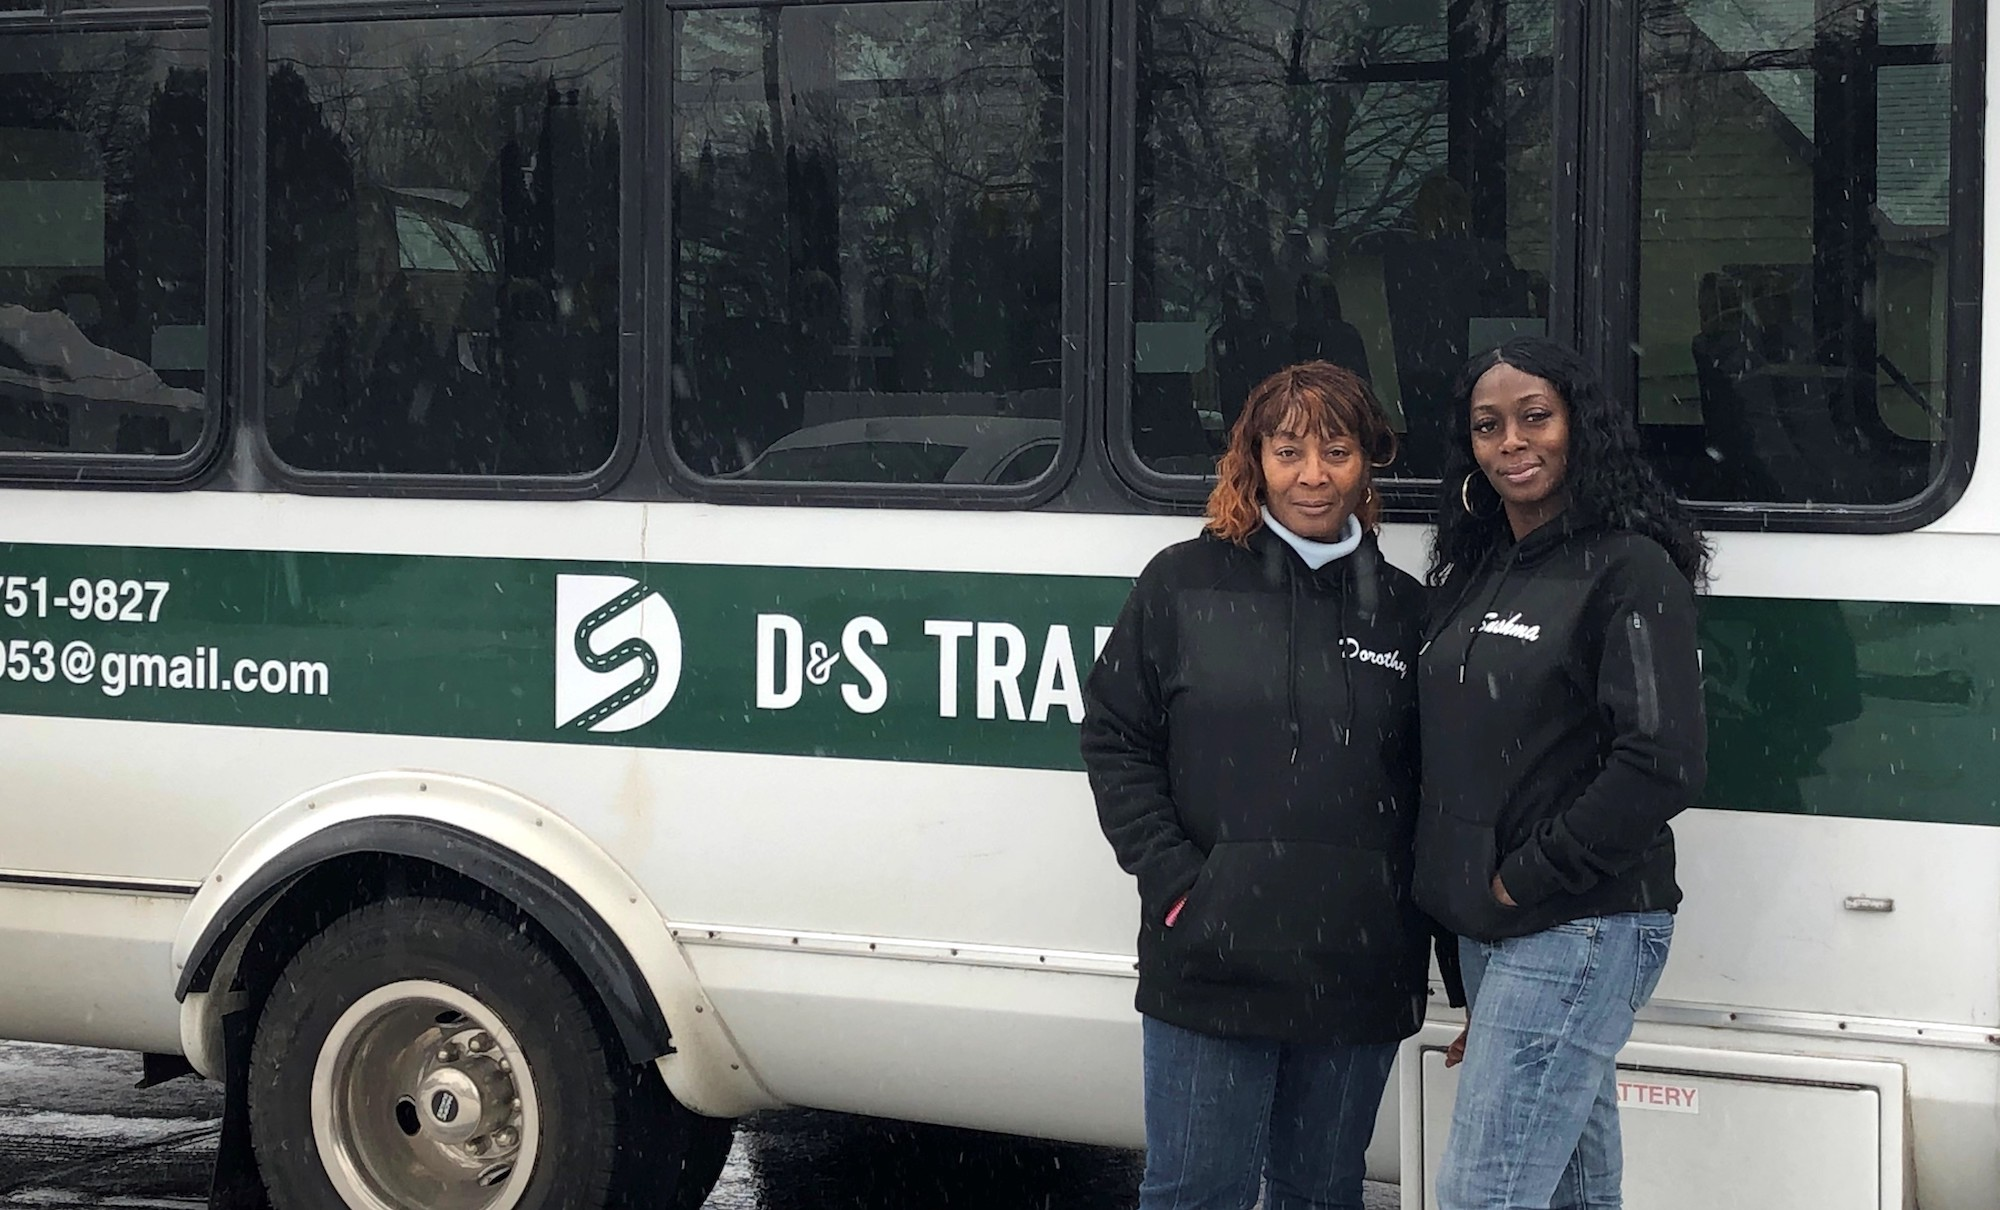 Dorothy and Sushma Jones, D&S Transportation Services, KOLUMN Magazine, KOLUMN, KINDR'D Magazine, KINDR'D, Willoughby Avenue, Wriit,